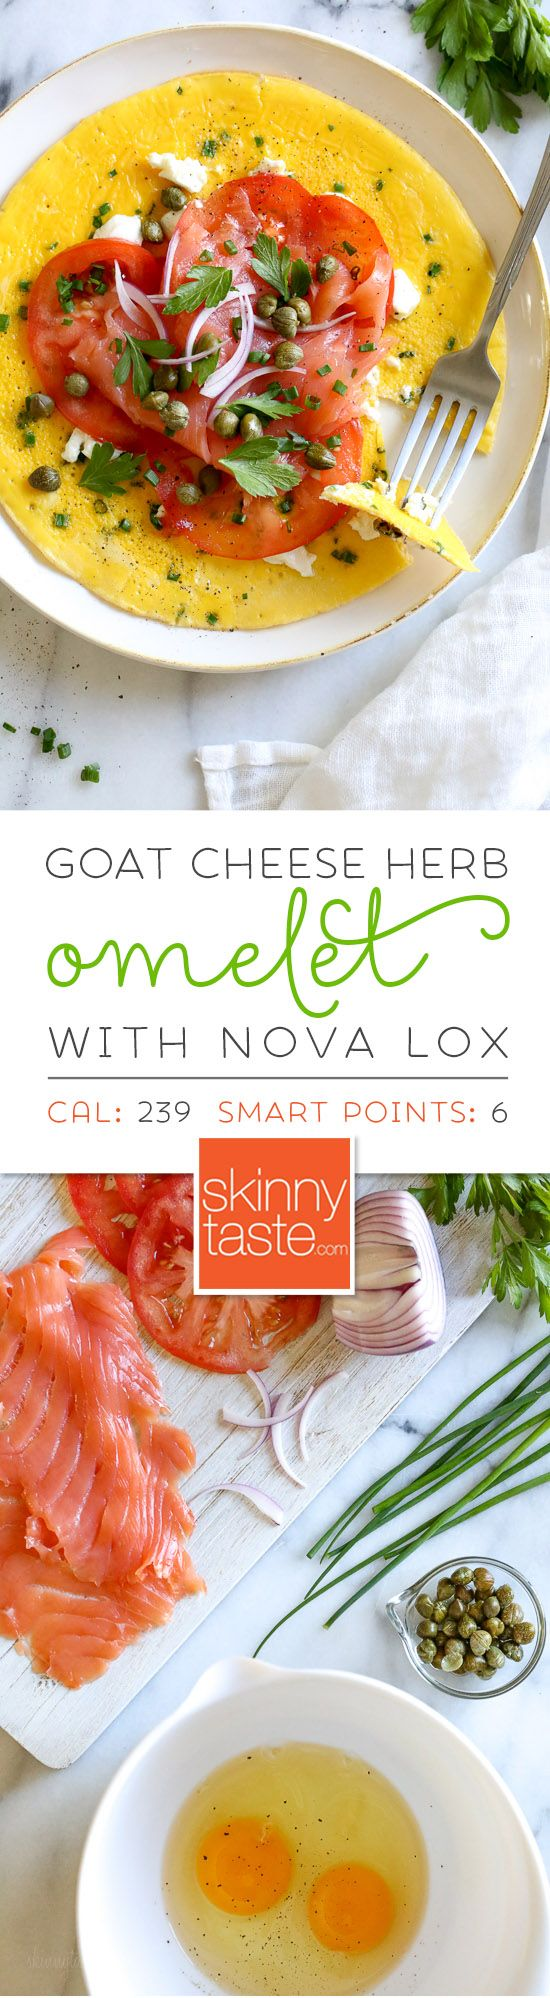 This Goat Cheese Herb Omelet topped with Nova Lox, sliced tomatoes and capers satisfies my bagel-and-lox craving, without the bagel! SO quick, takes about 5 minutes to make!